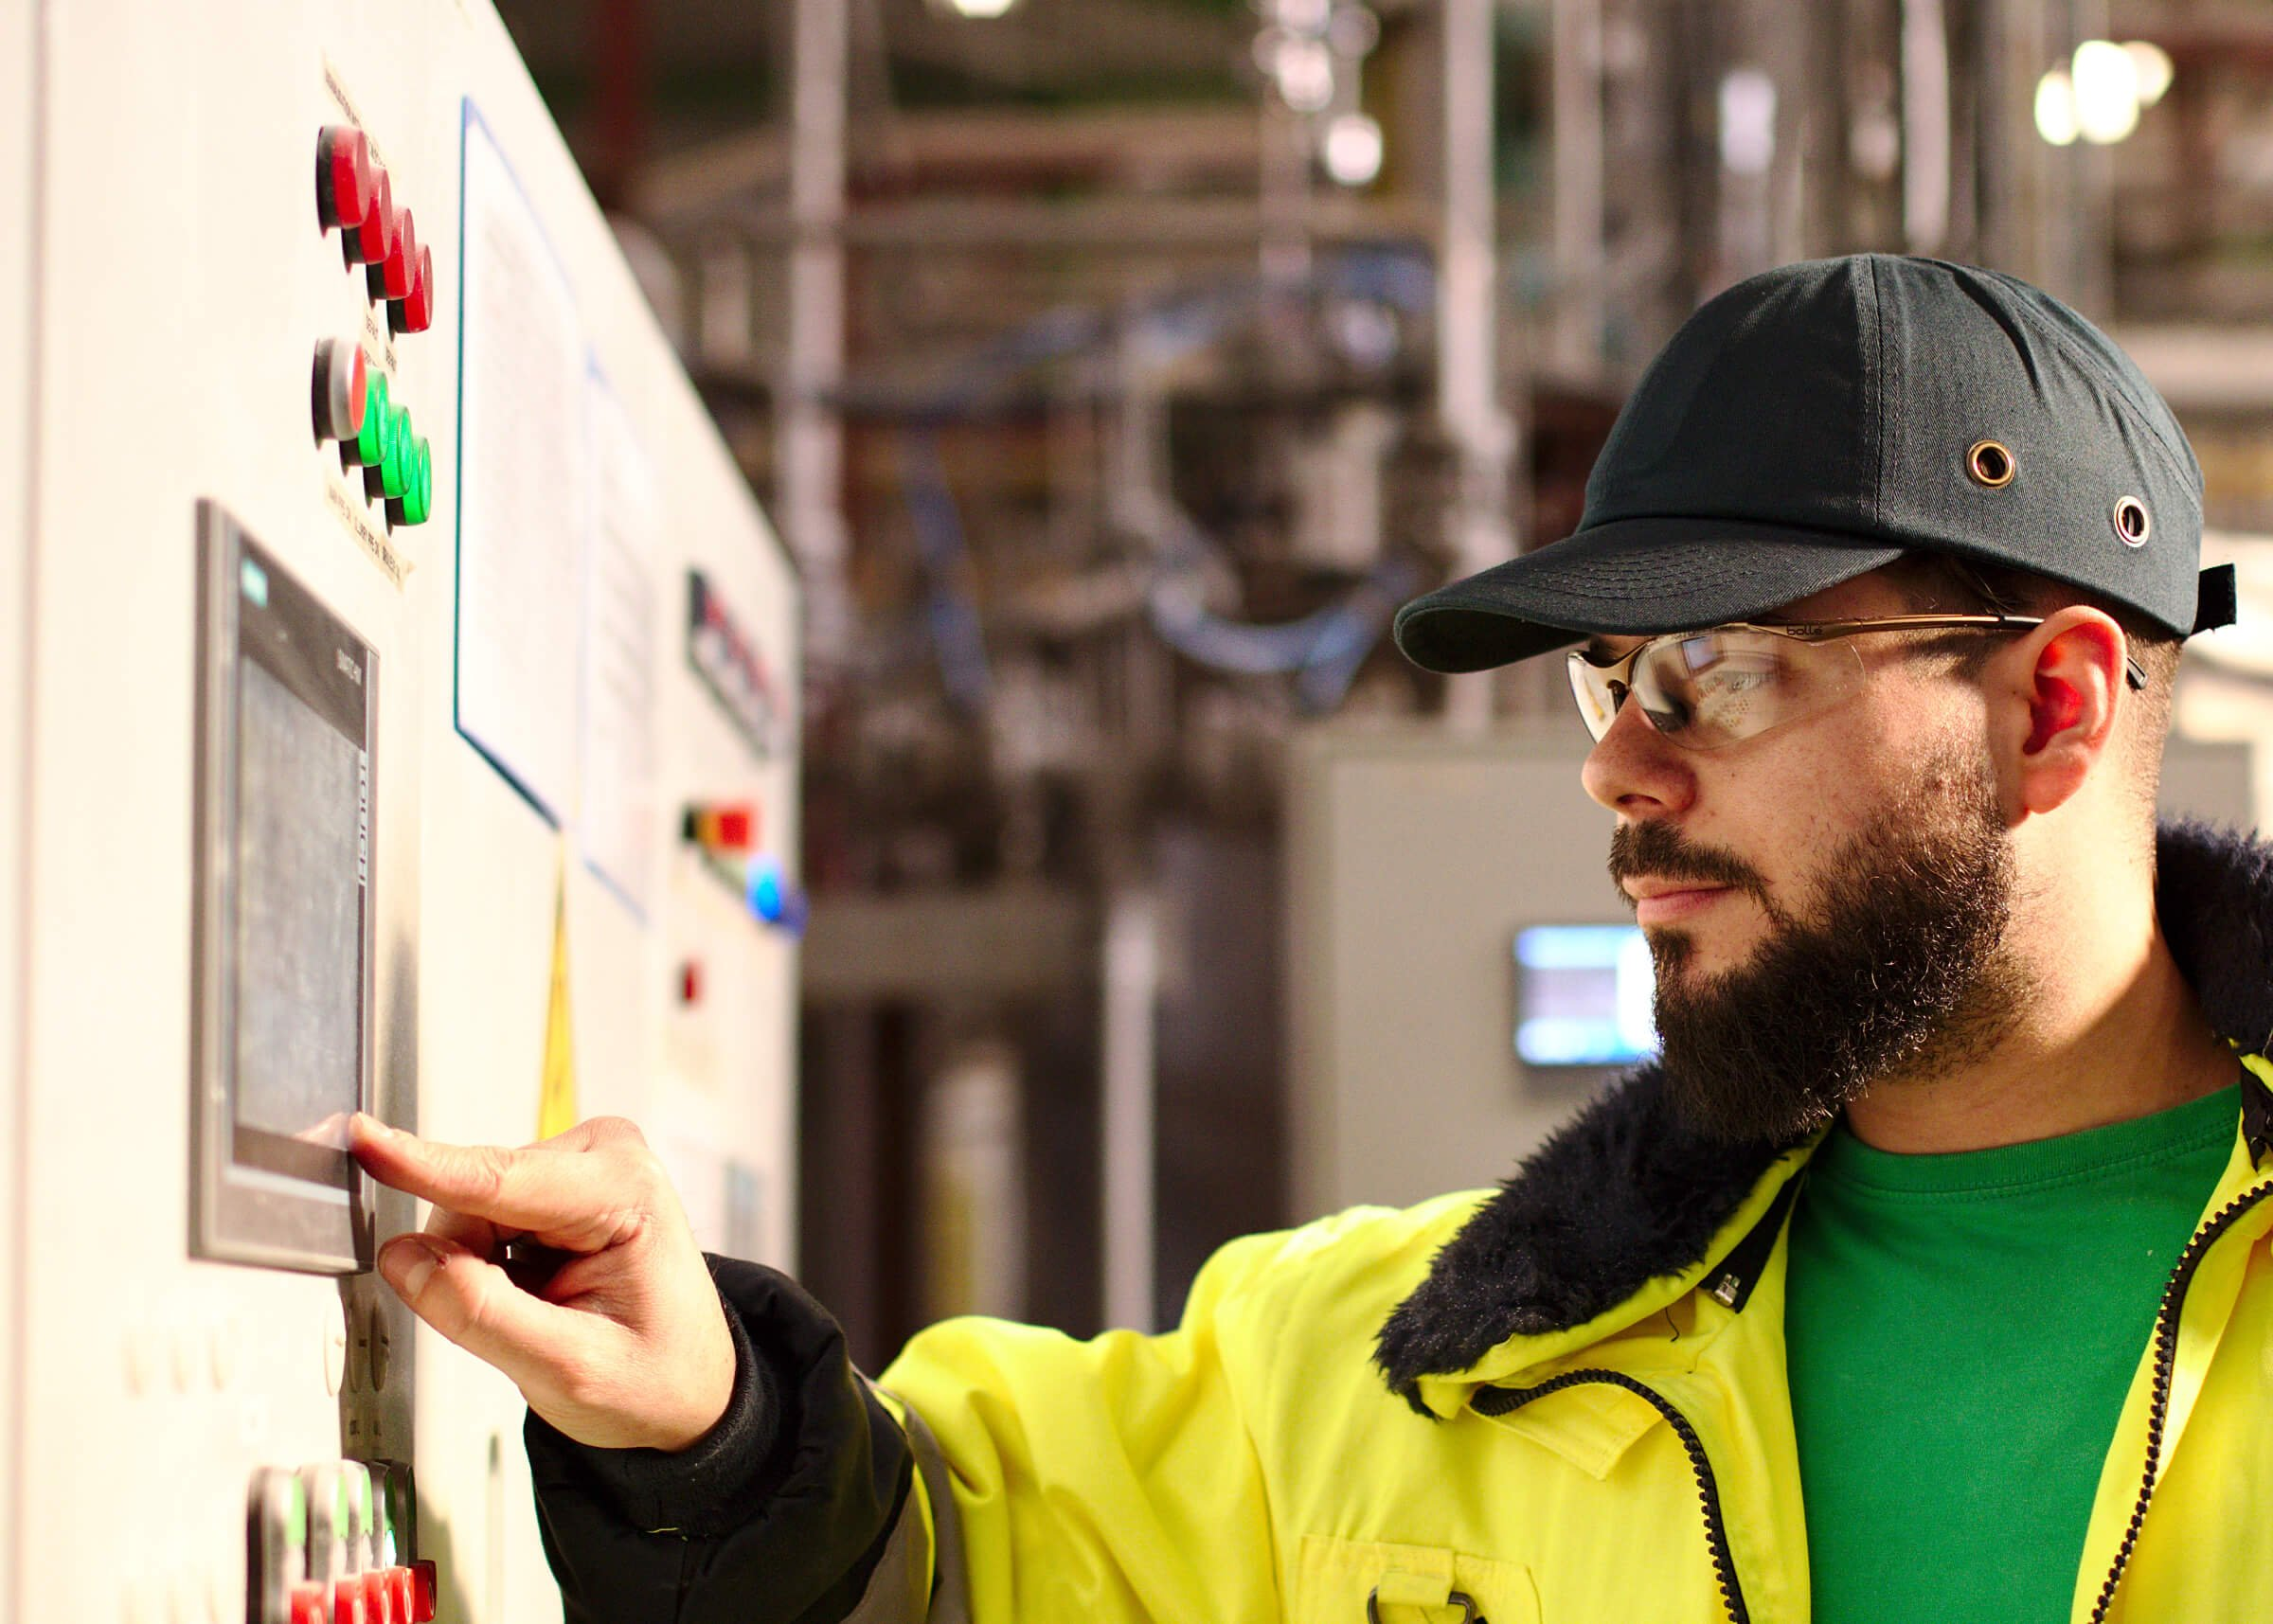 operator with black cap and yellow jacket in front of a control panel